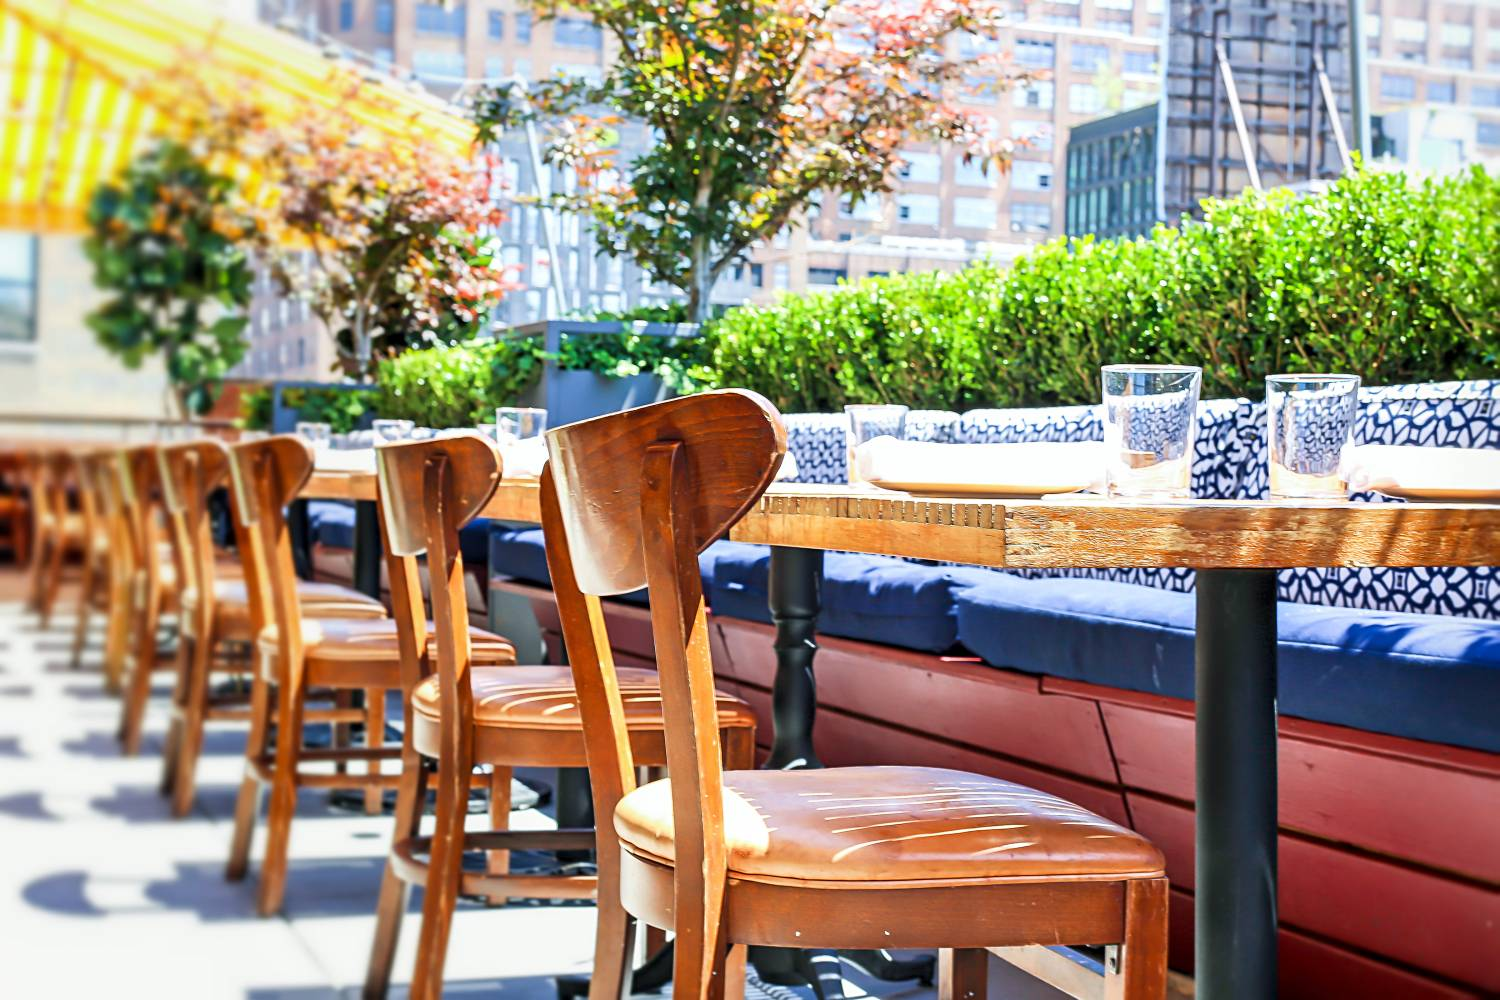 Outdoor seating at Catch Restaurant in Meatpacking District